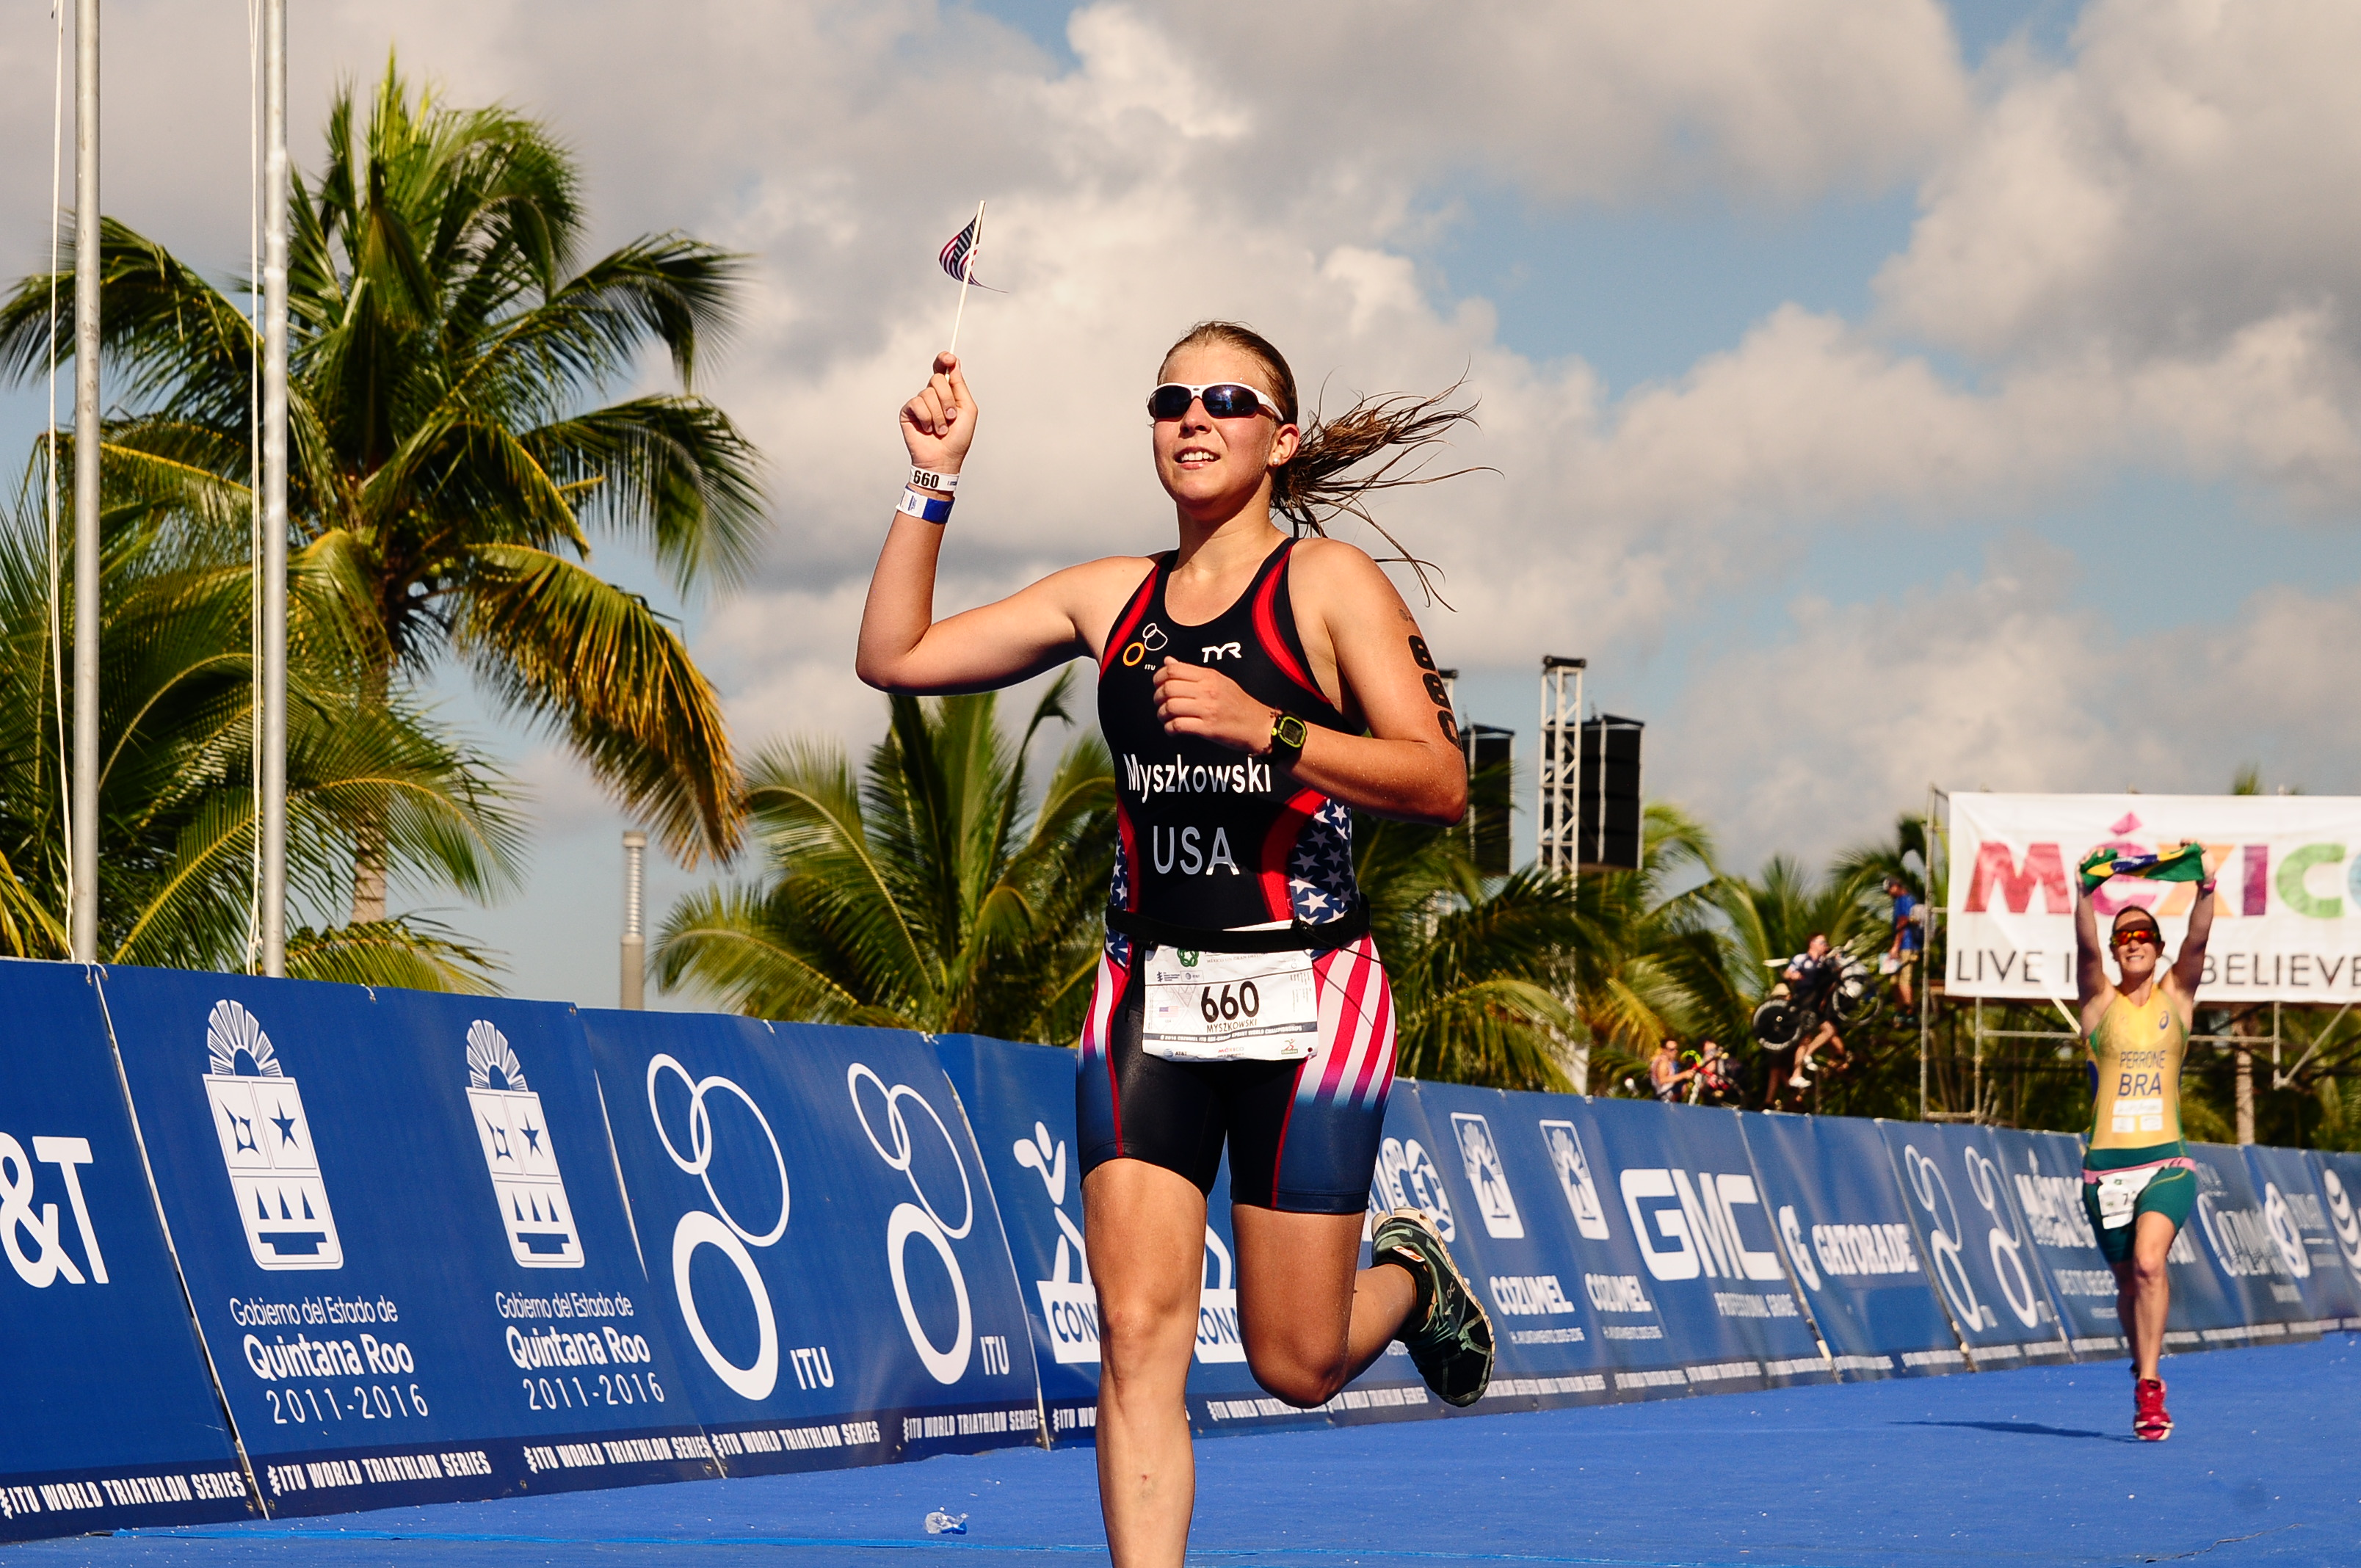 Olivia Myszkowski was part of the Team USA at the World Triathlon in September.